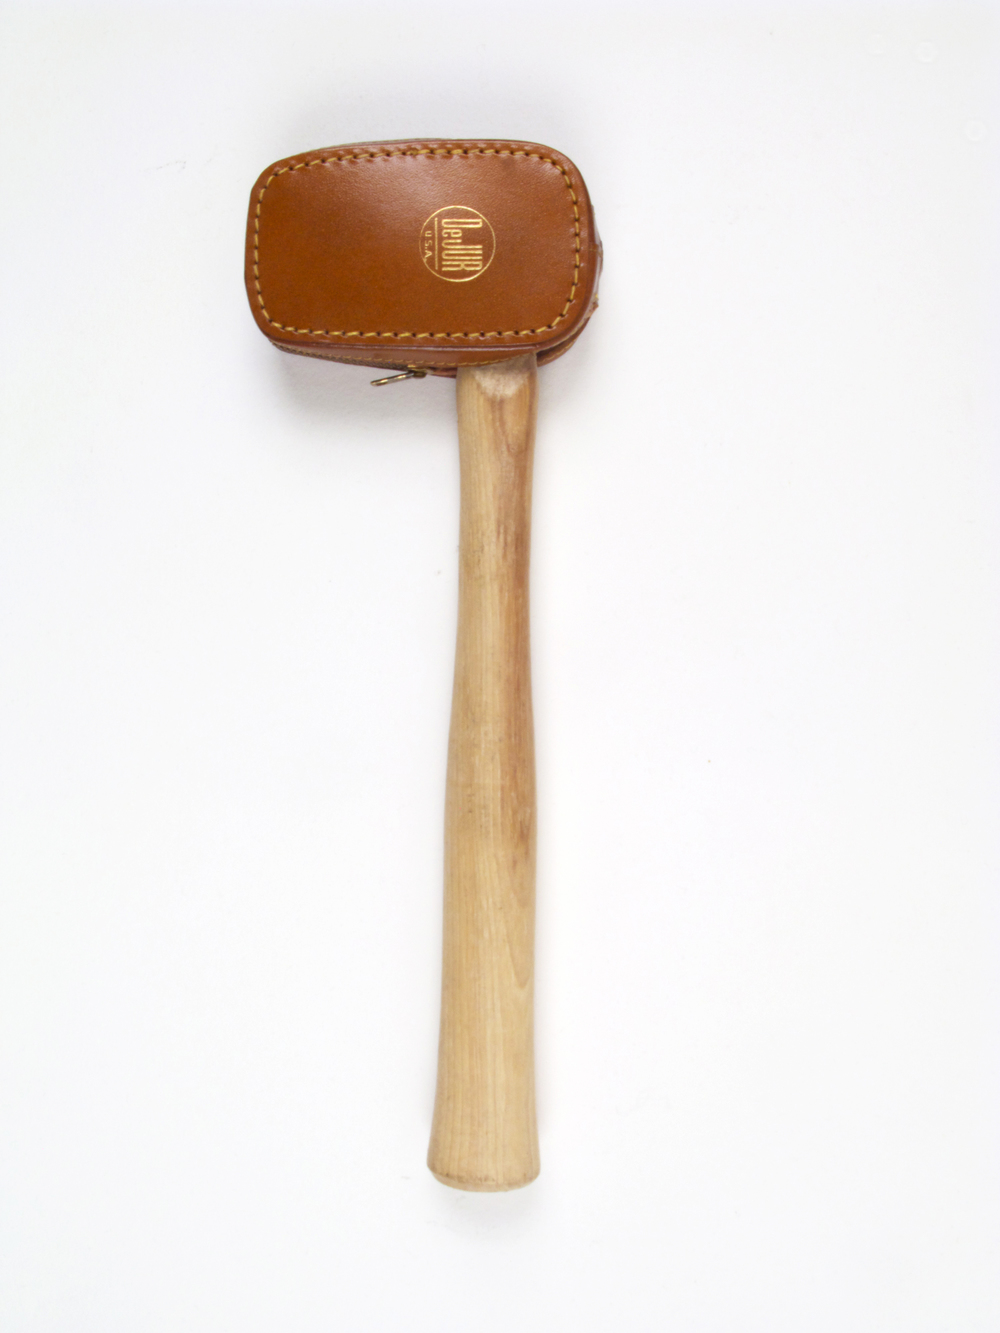 Light Meter Hammer2.jpg